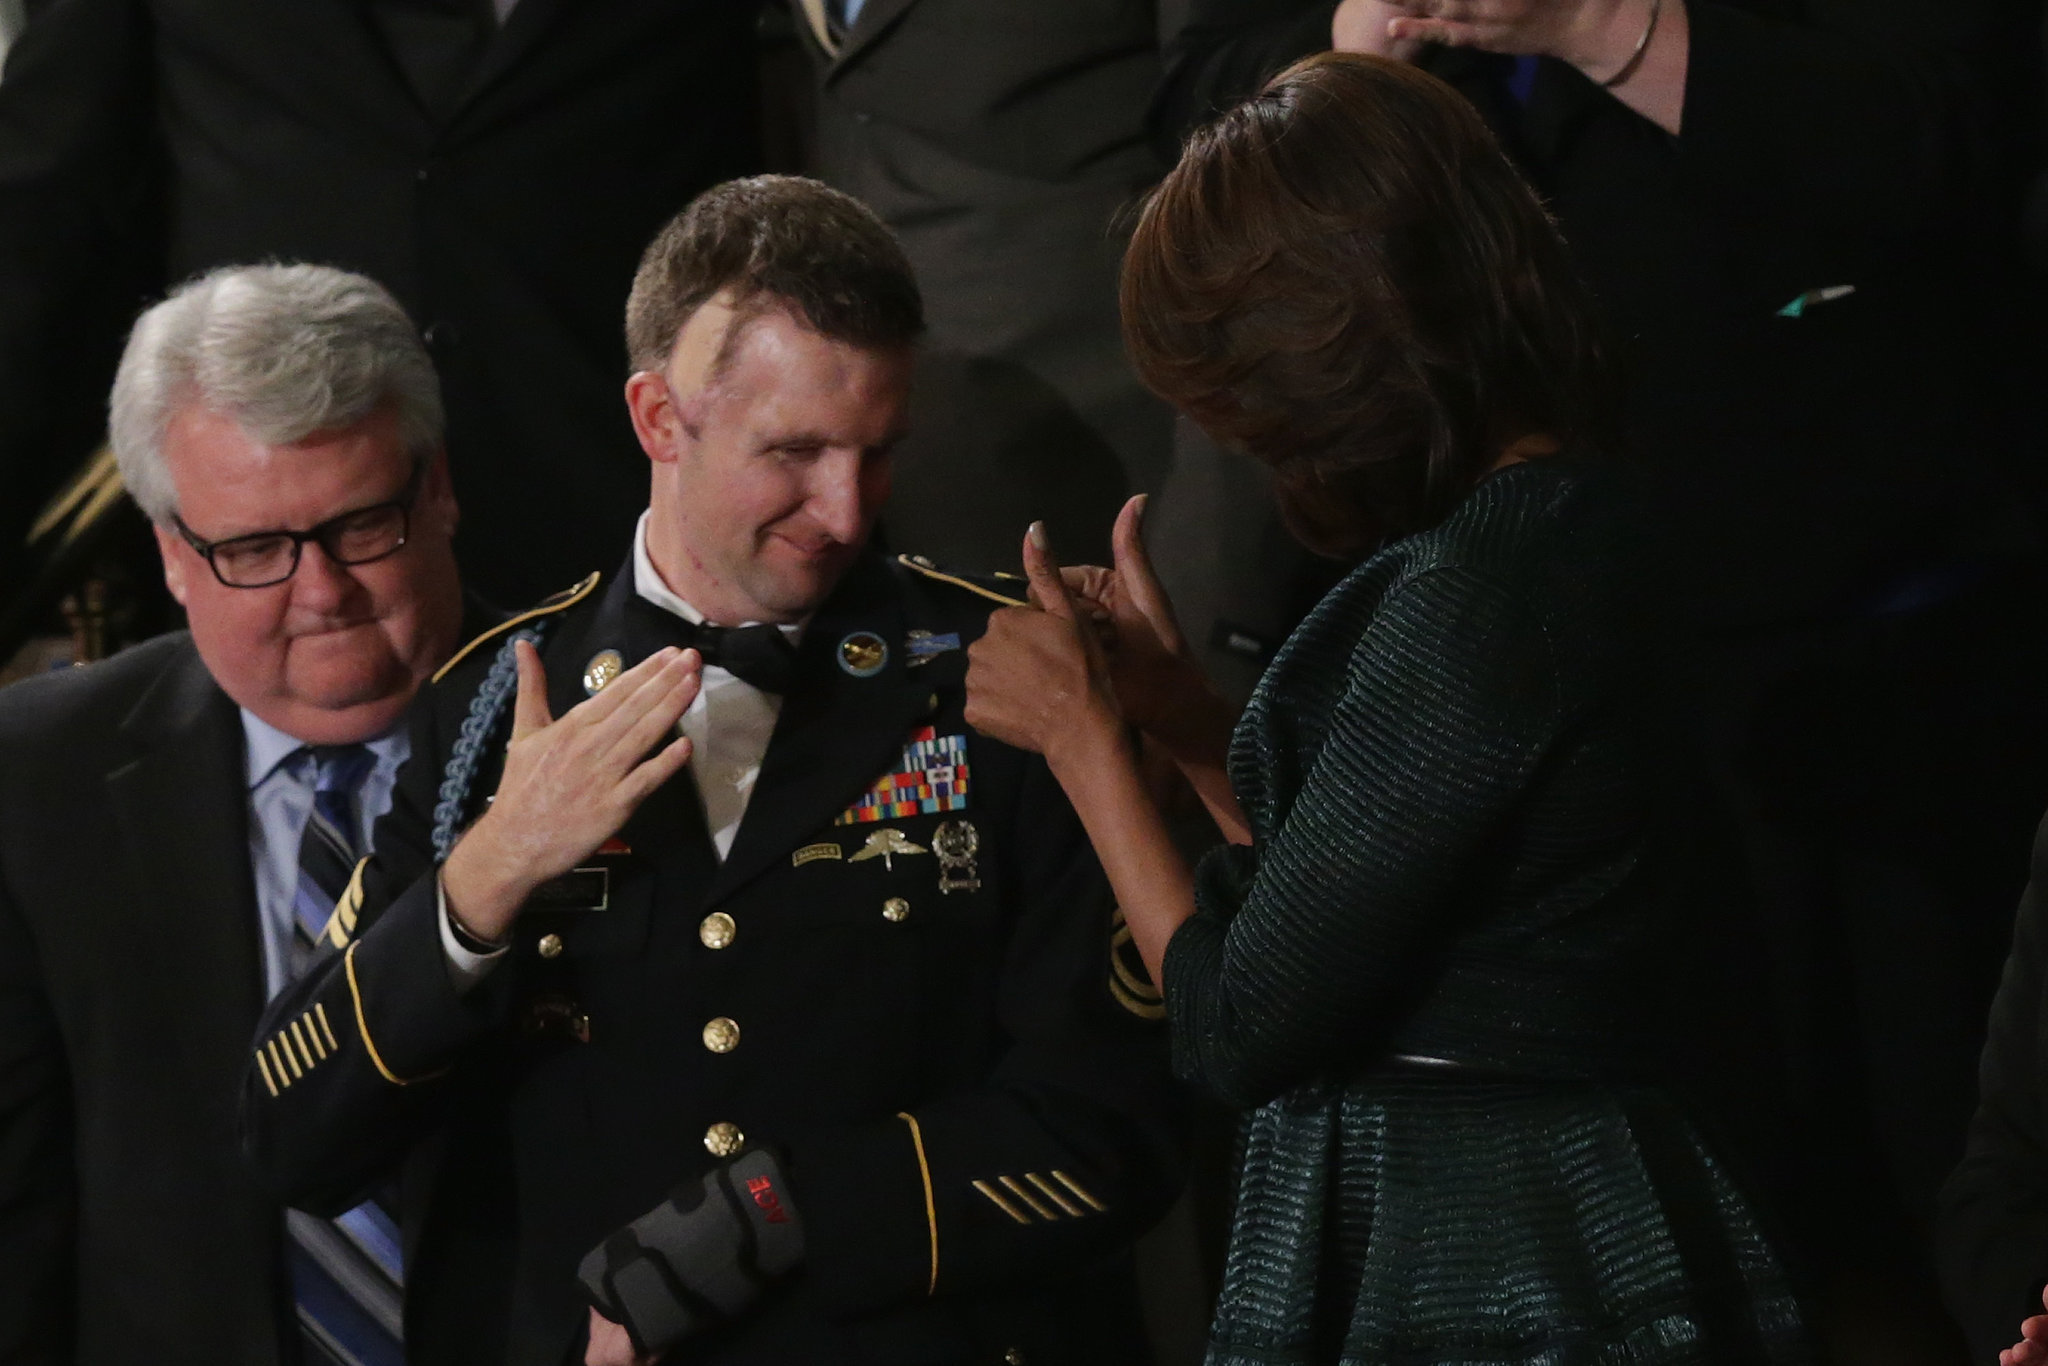 Sgt. Cory Remsburg Was the Best Part of the State of the Union